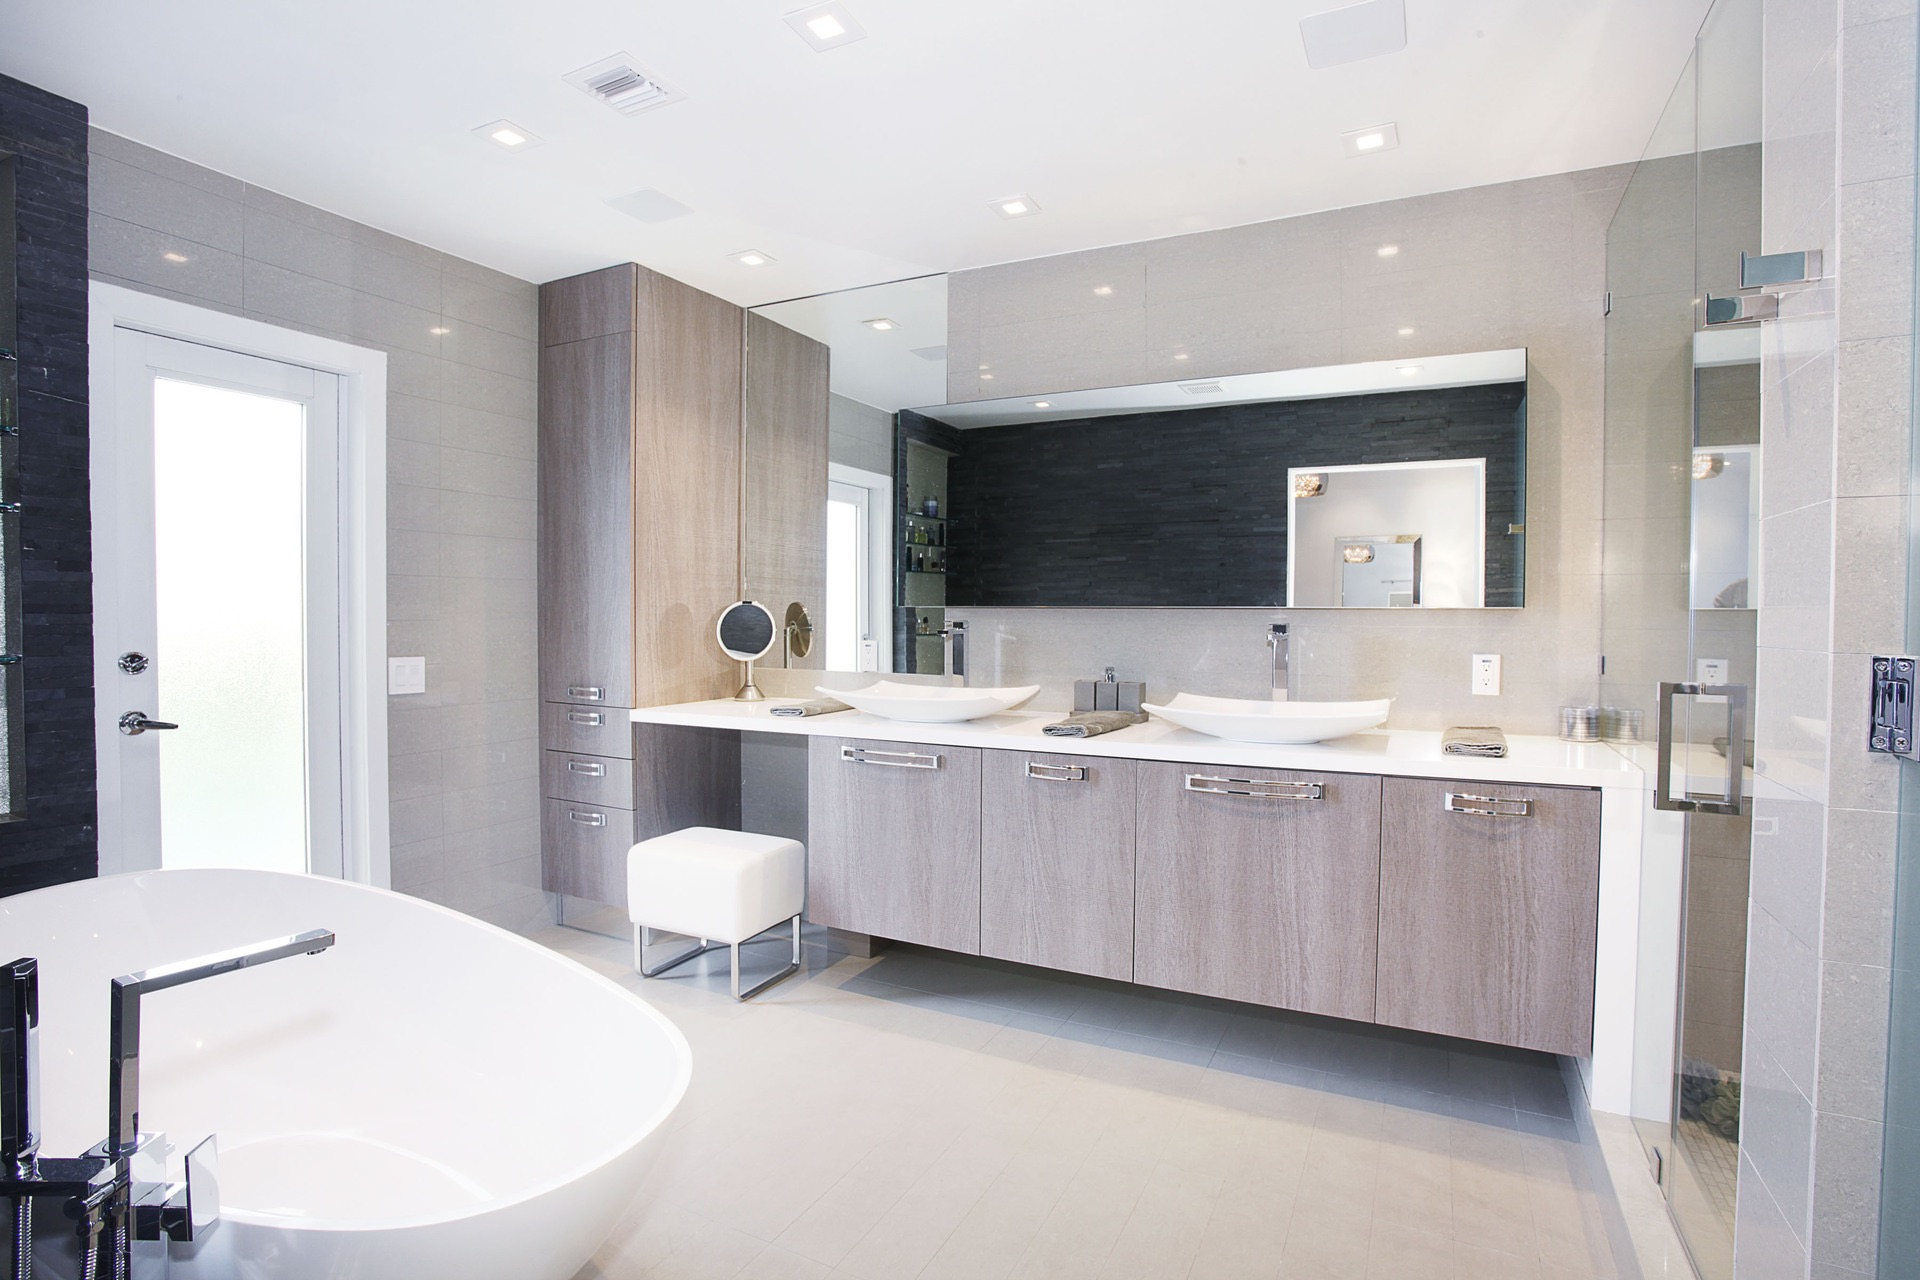 Modern Double Sink Bathroom Furniture With Whitewashed Cabinets (Image 14 of 18)